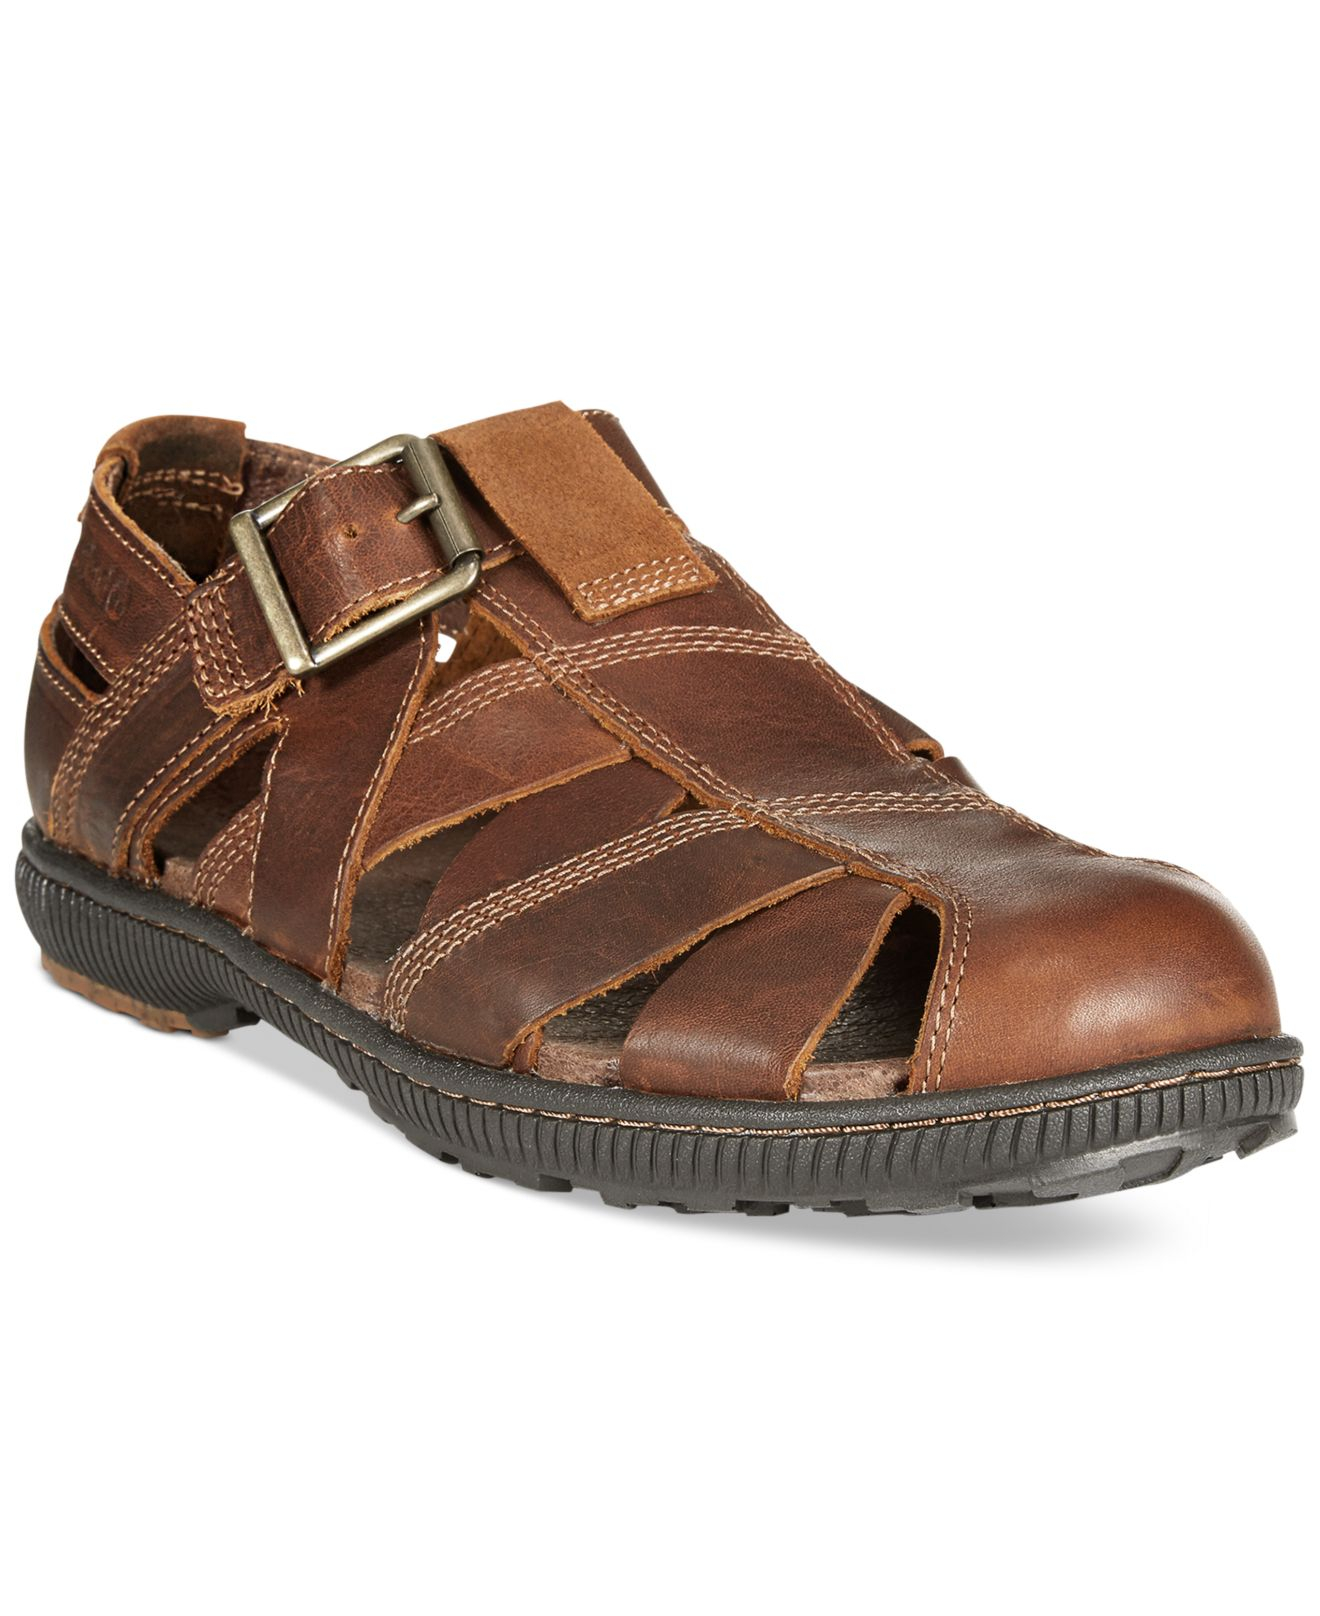 Timberland Hollbrook Fisherman Sandals In Brown For Men Lyst